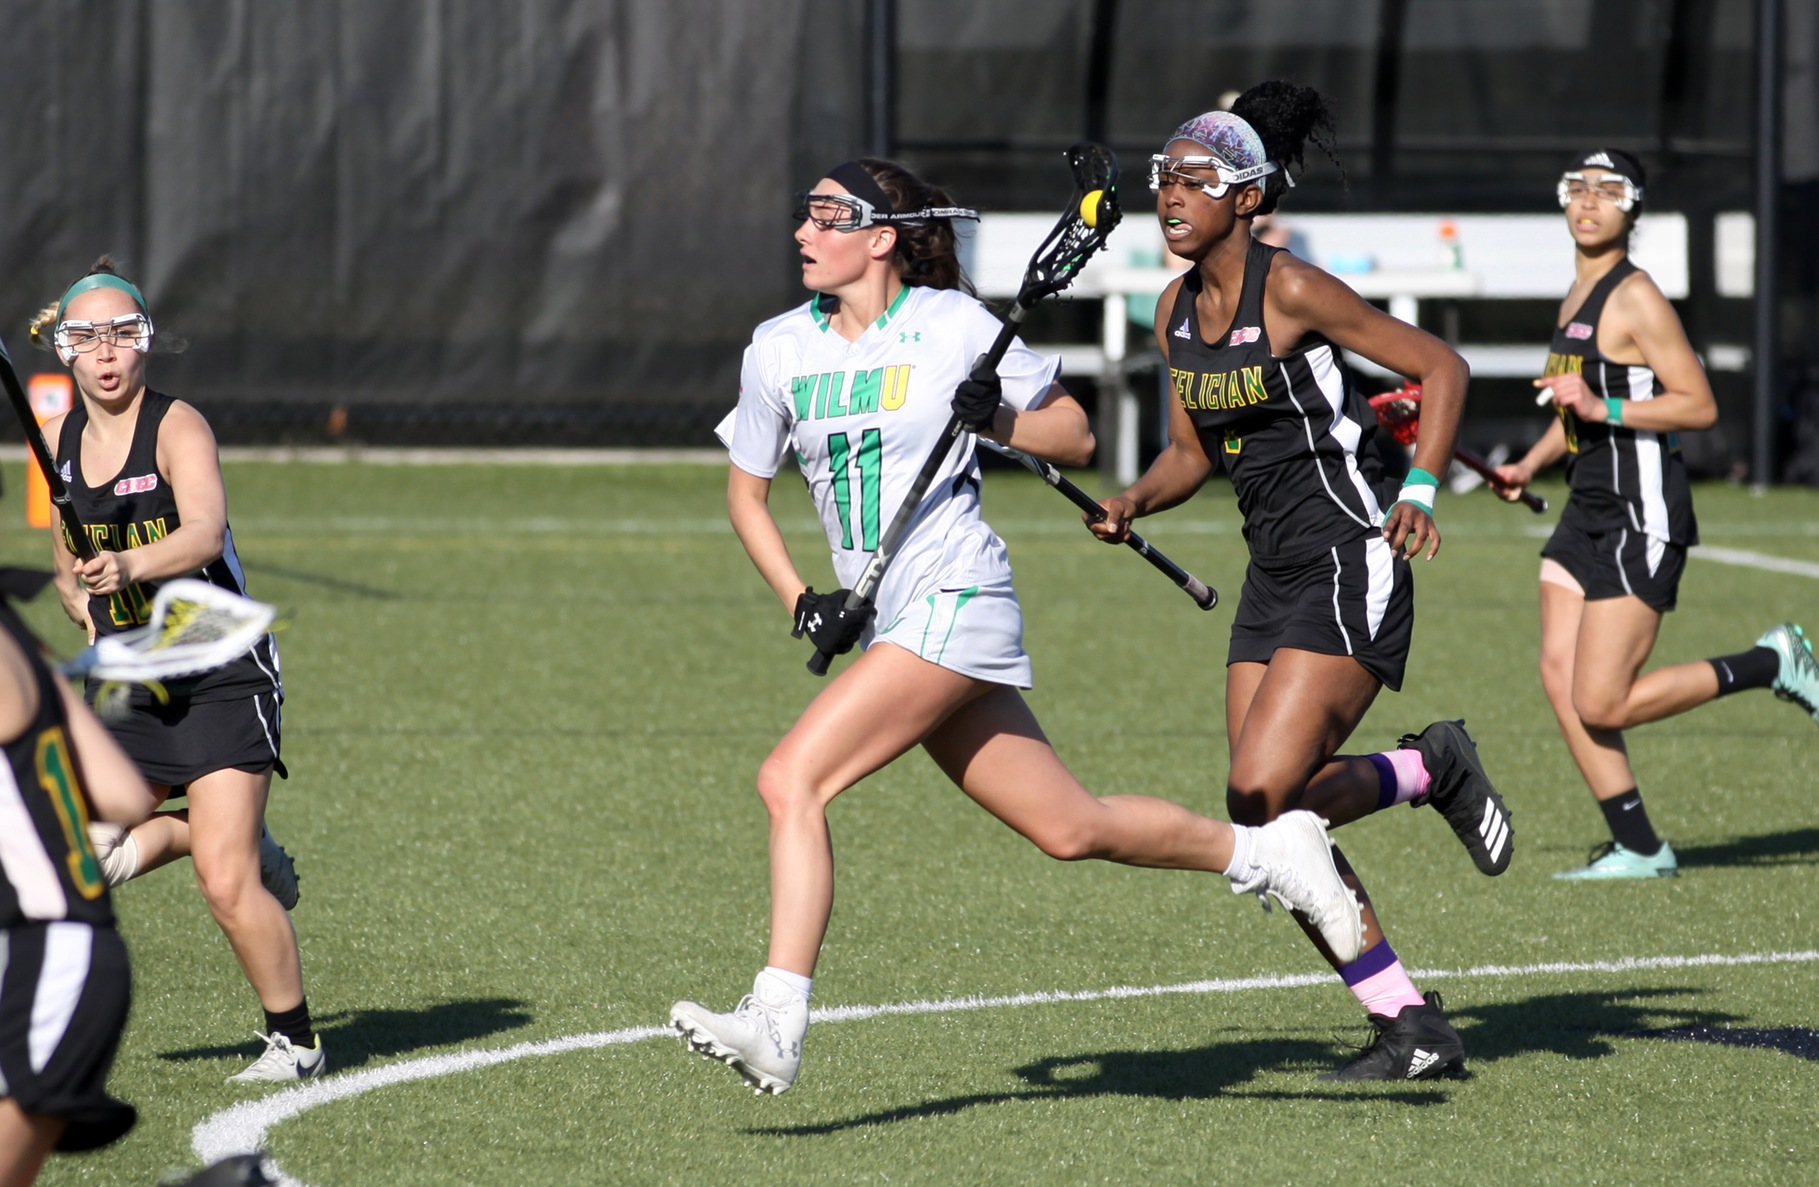 Copyright 2019; Wilmington University. All rights reserved. Photo of Delaney Steele who led the Wildcats with 4 goals and six assists for 10 points against Felician. Photo by Katlynne Tubo. April 3, 2019 vs. Felician